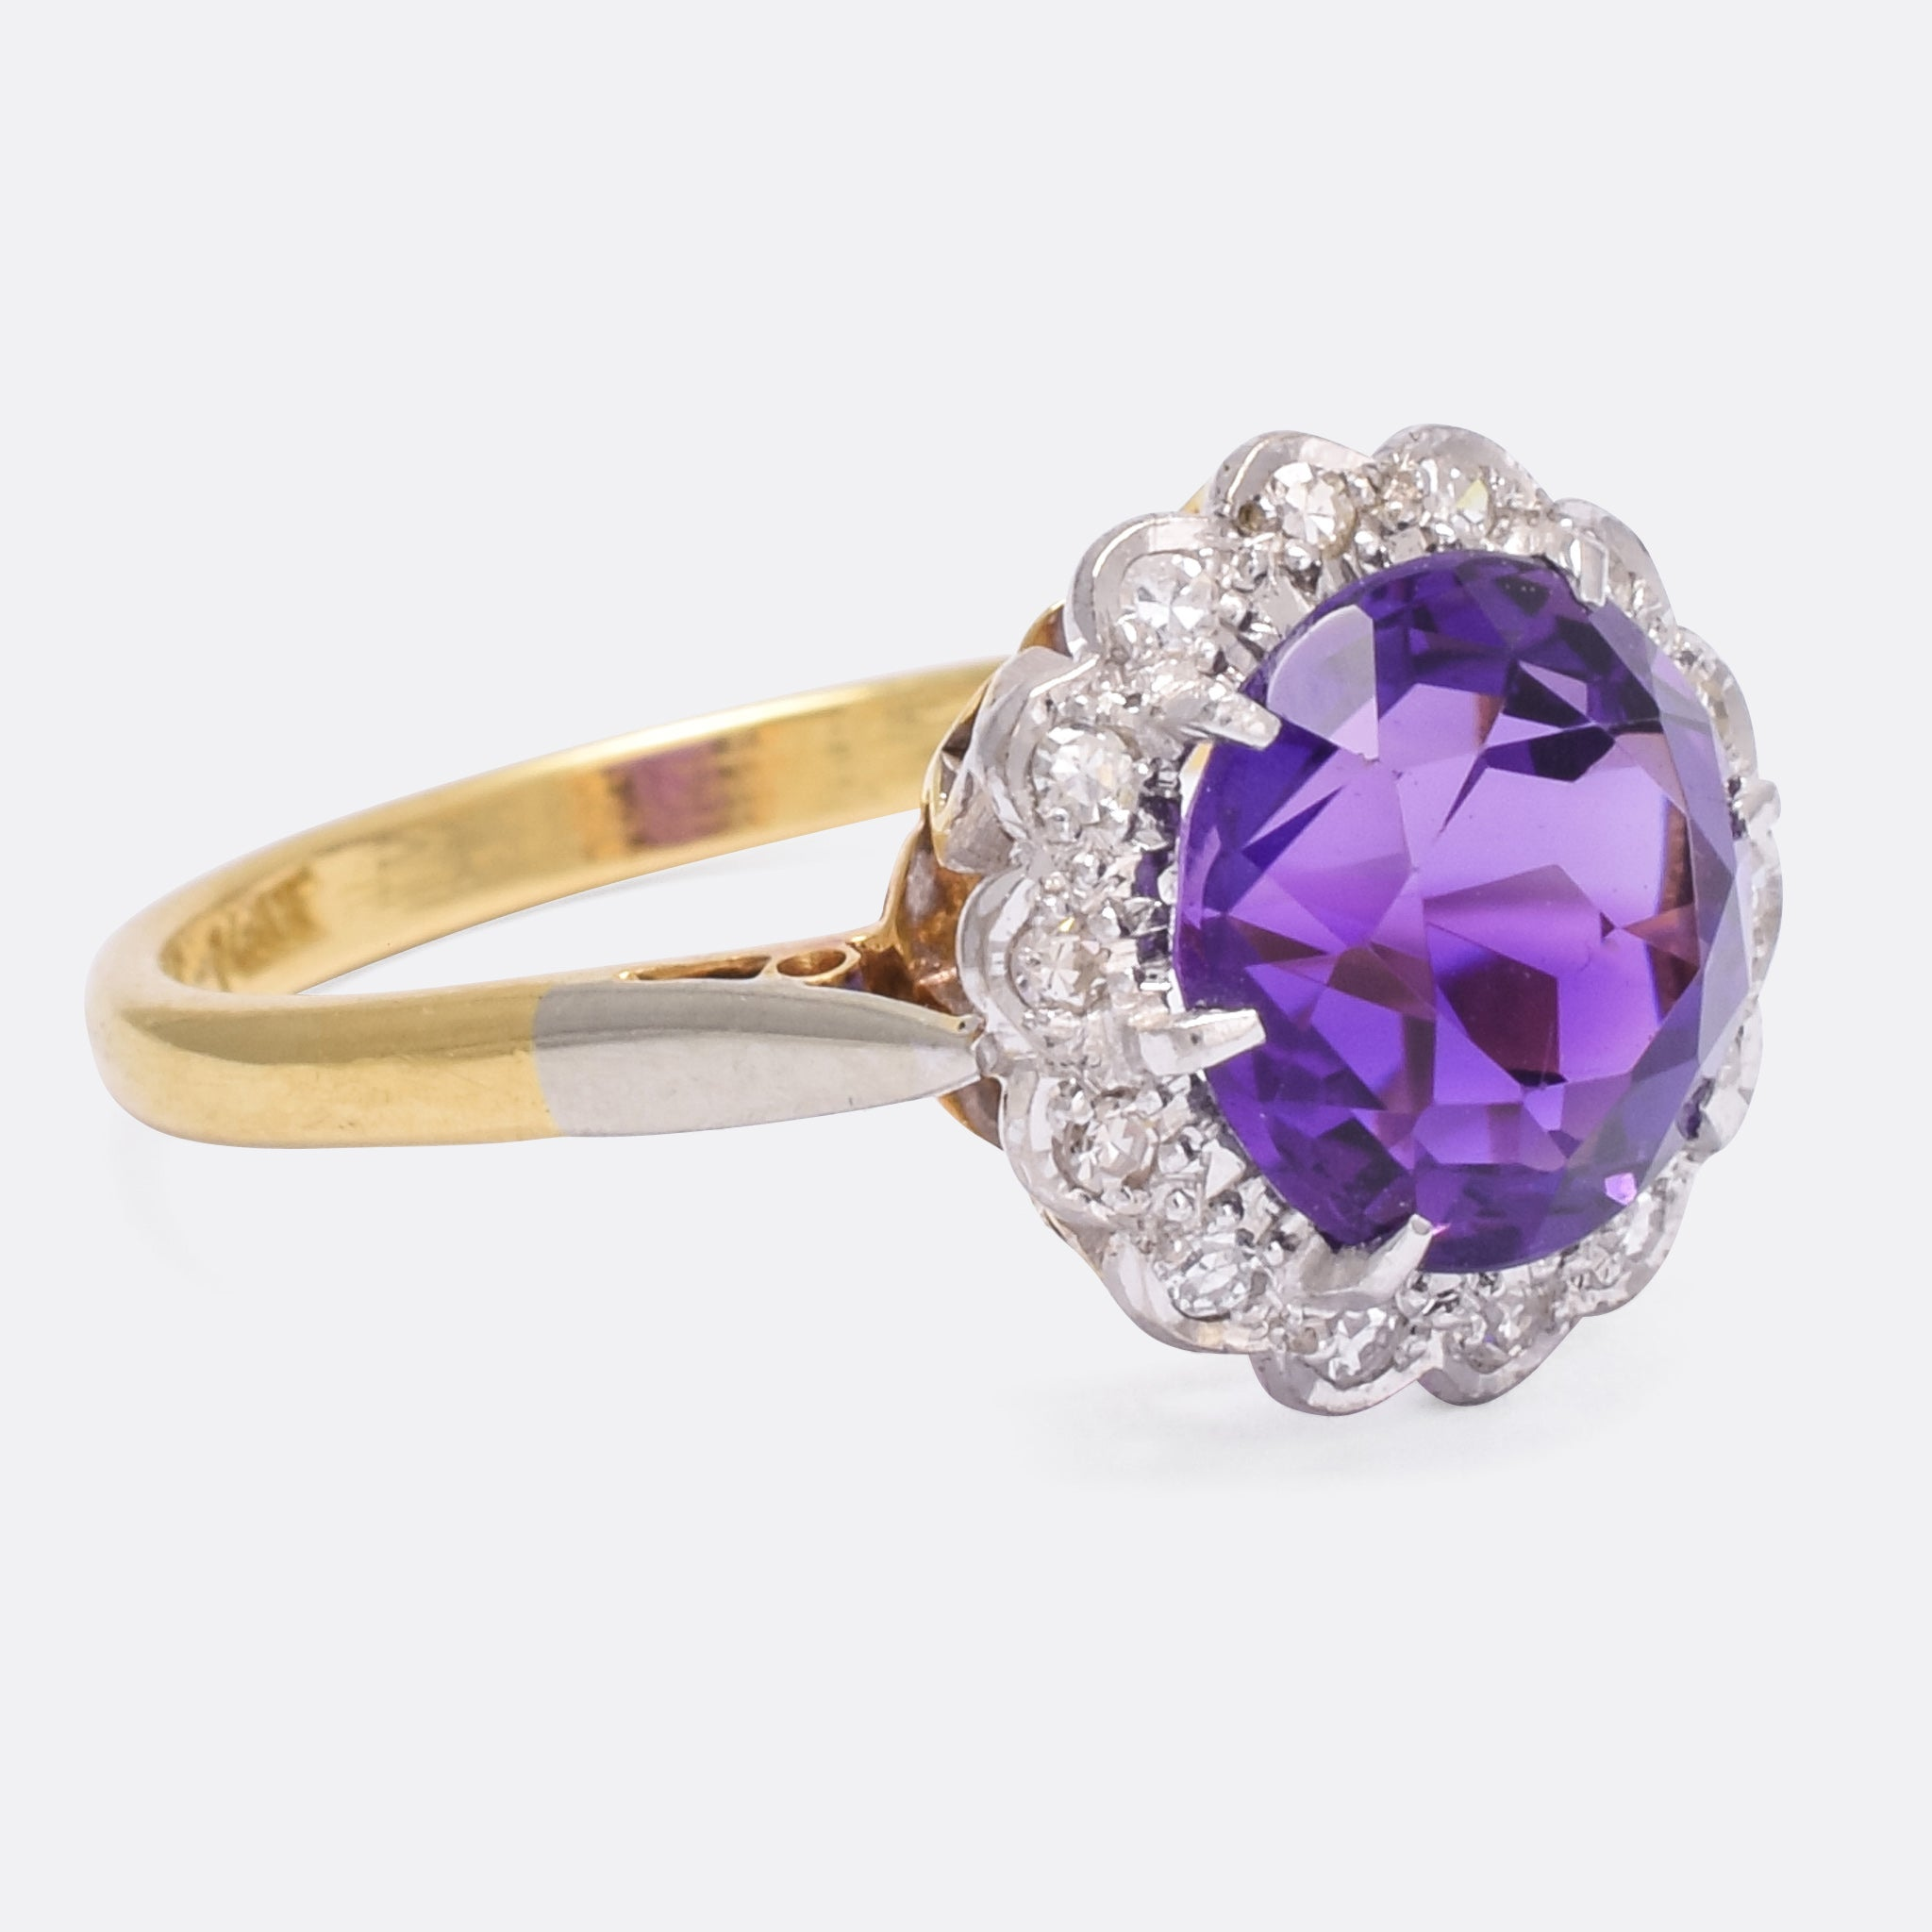 ring diamond cut amethist today shipping miadora tdw g product halo and cushion engagement silver sterling watches free rings jewelry h green overstock amethyst cocktail